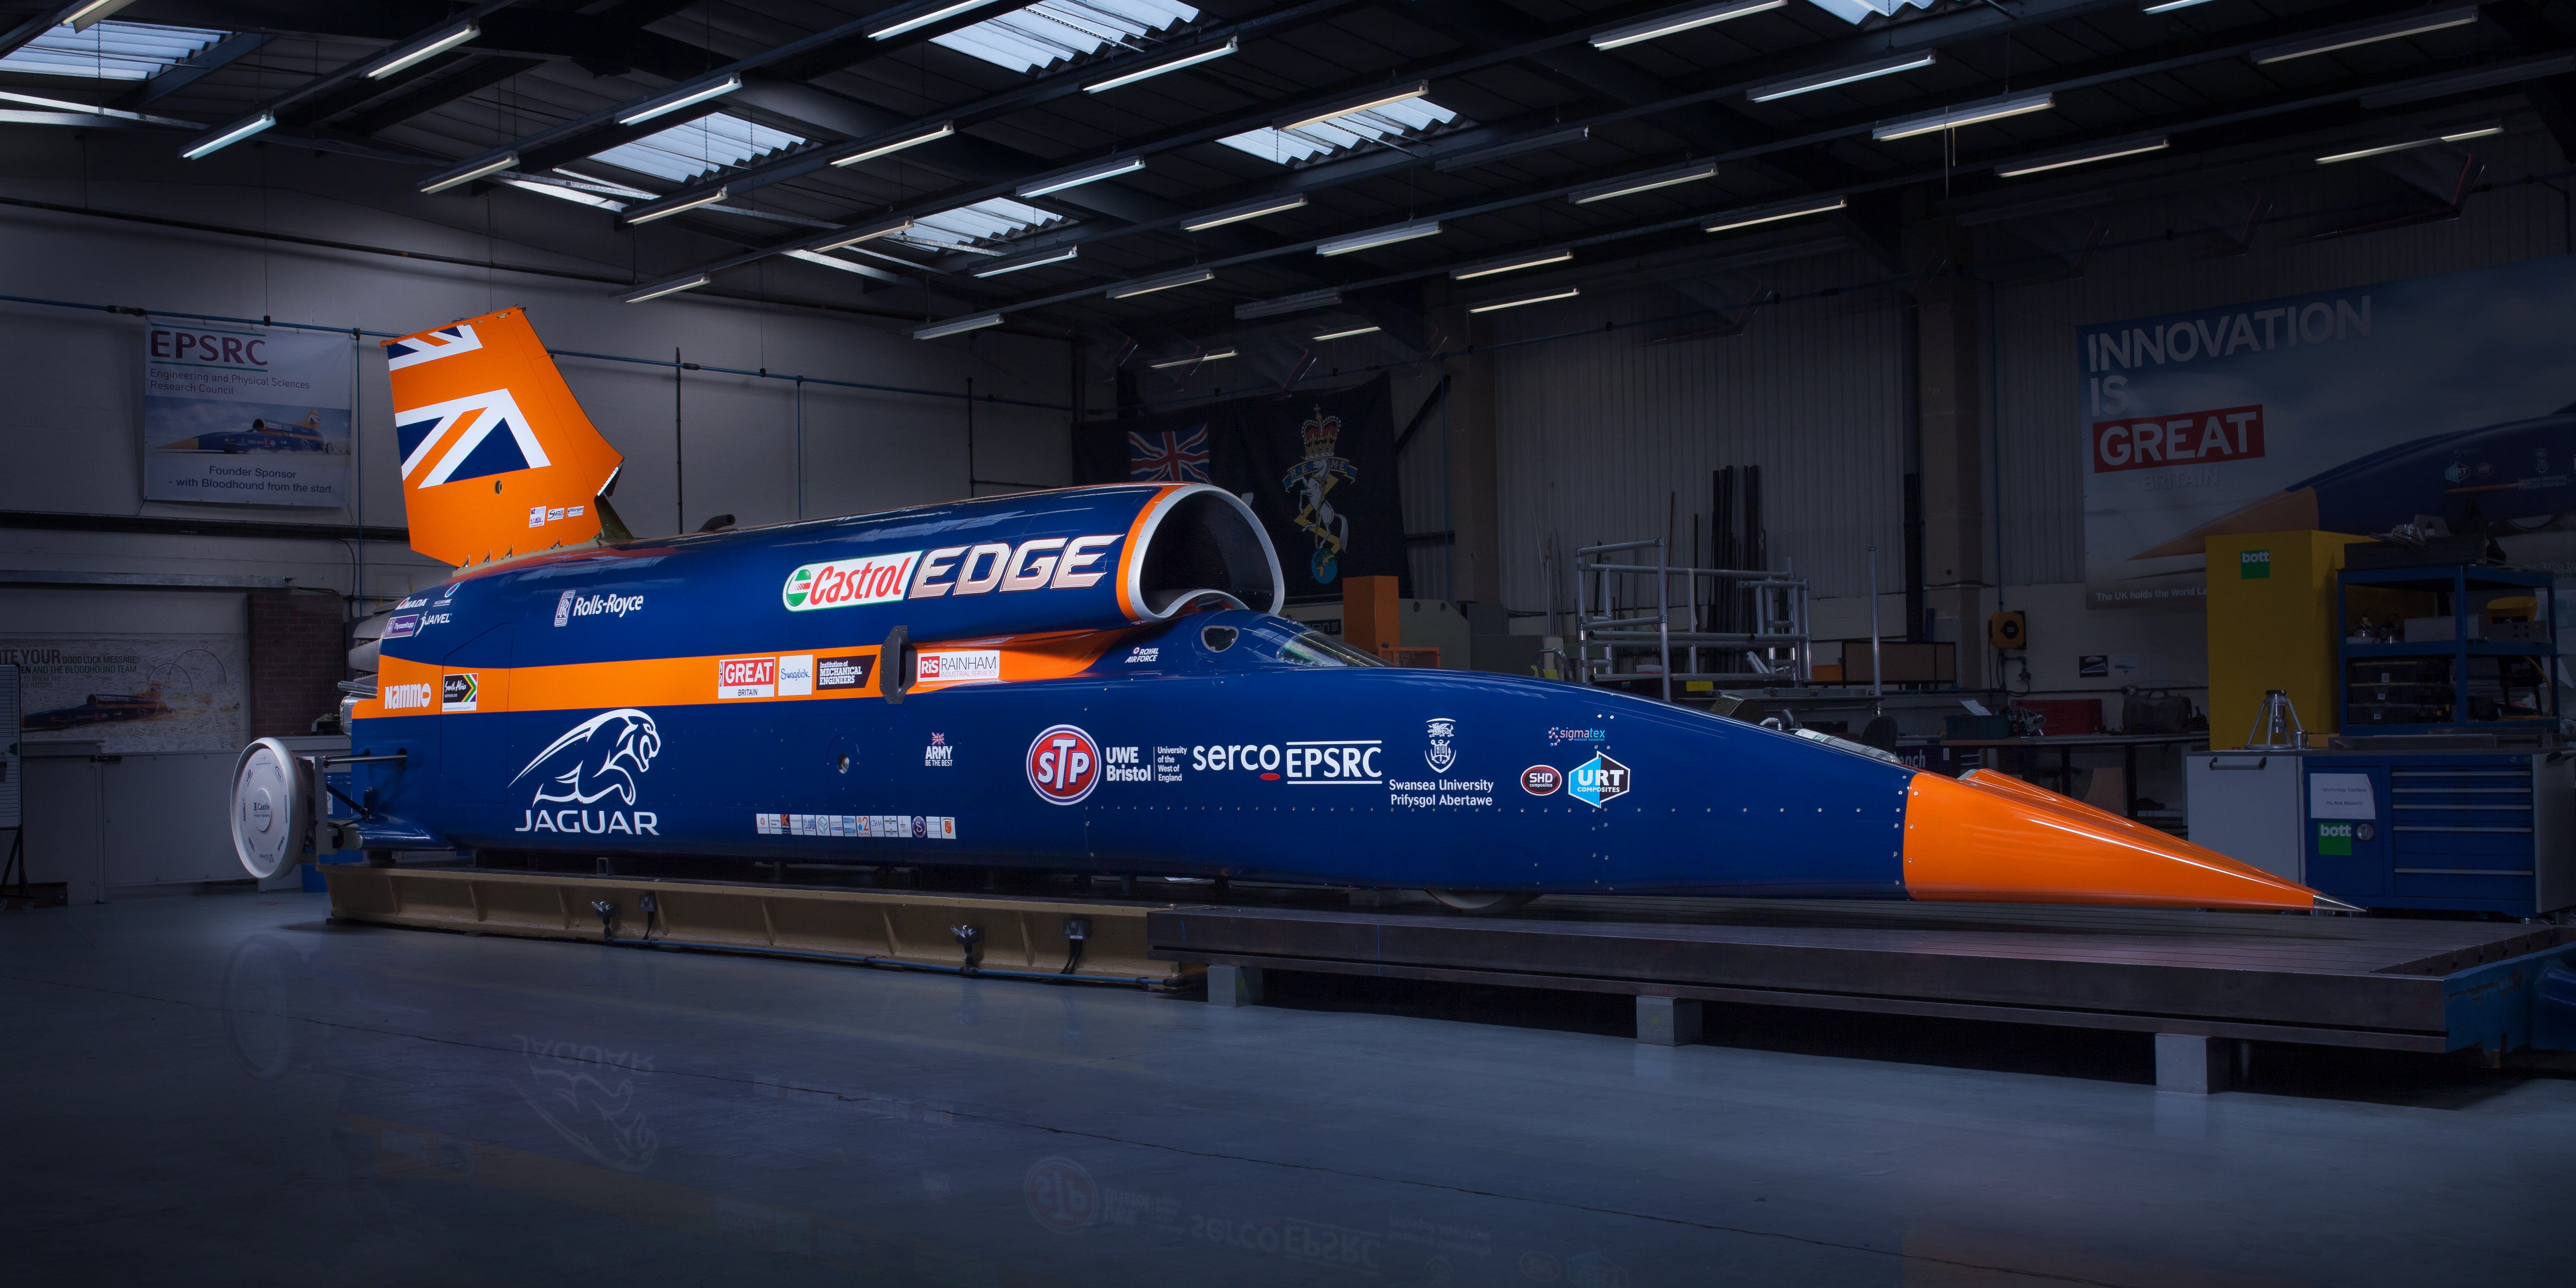 Inside The Engineering Of The World's First 1600KM/H Car